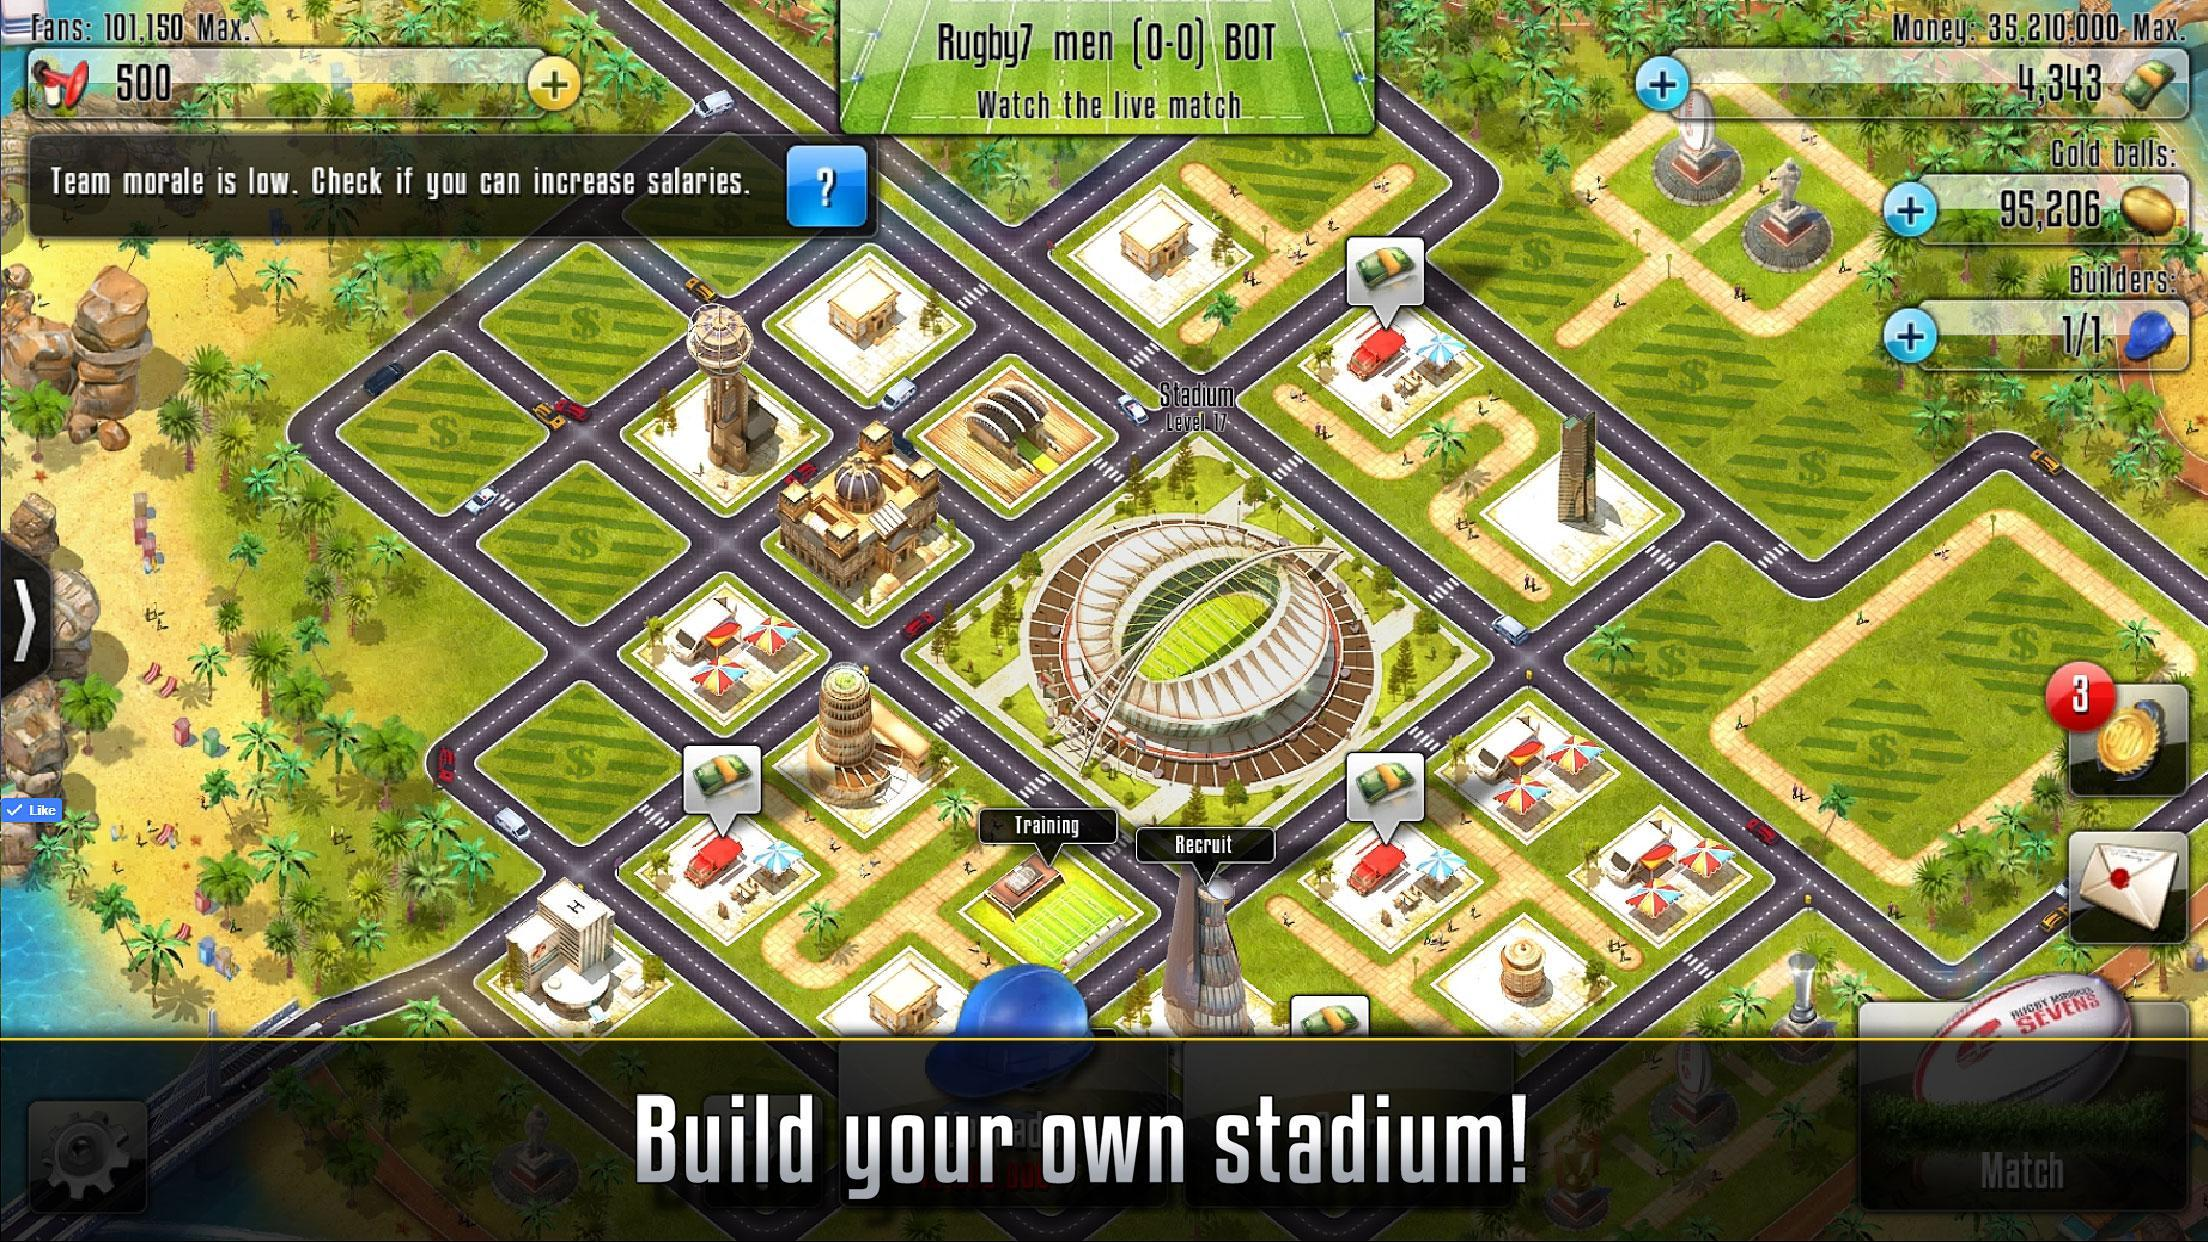 rugby sevens manager 1